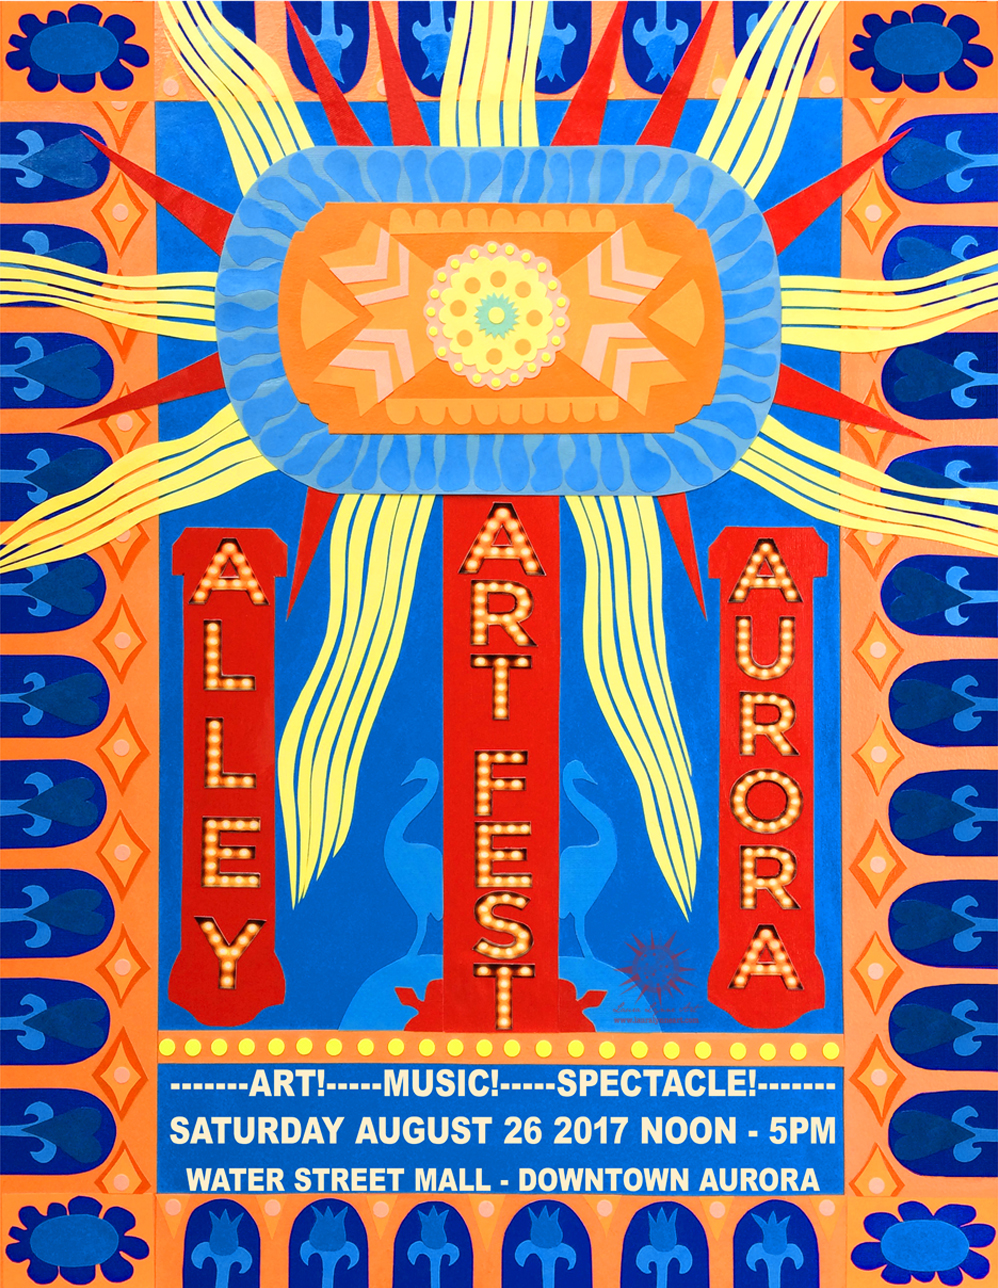 Alley Art Festival Poster Design by Laura Lynne Art based on Paramount Theater's Art Deco Building in Aurora Illinois